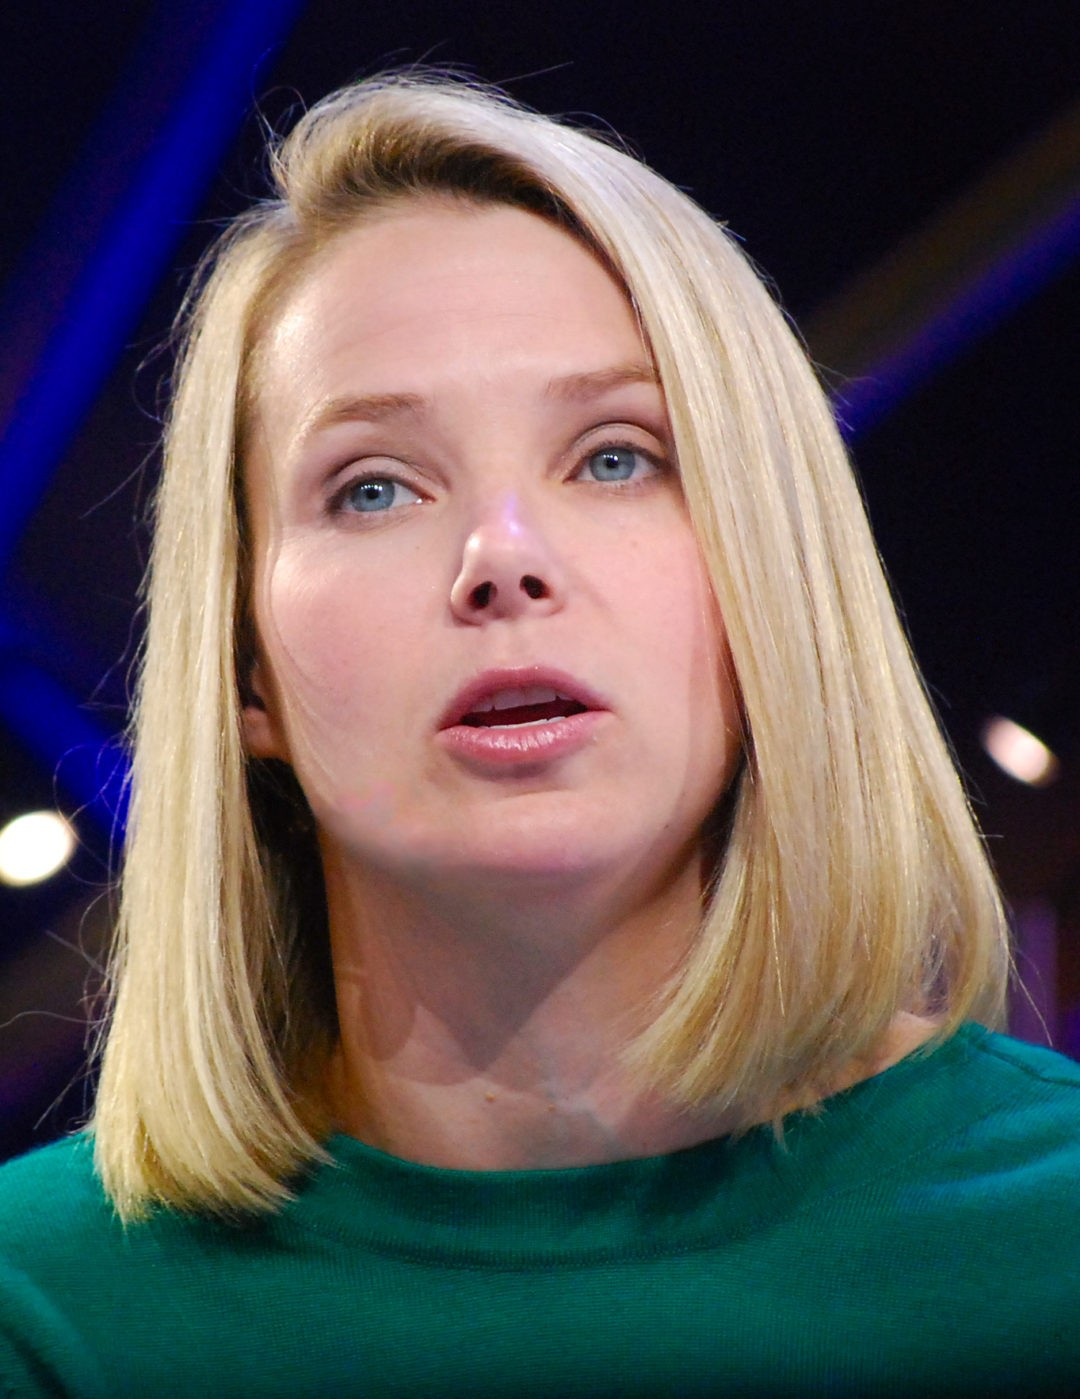 Marissa Mayer, Yahoo's CEO Talking About Art and Engineering